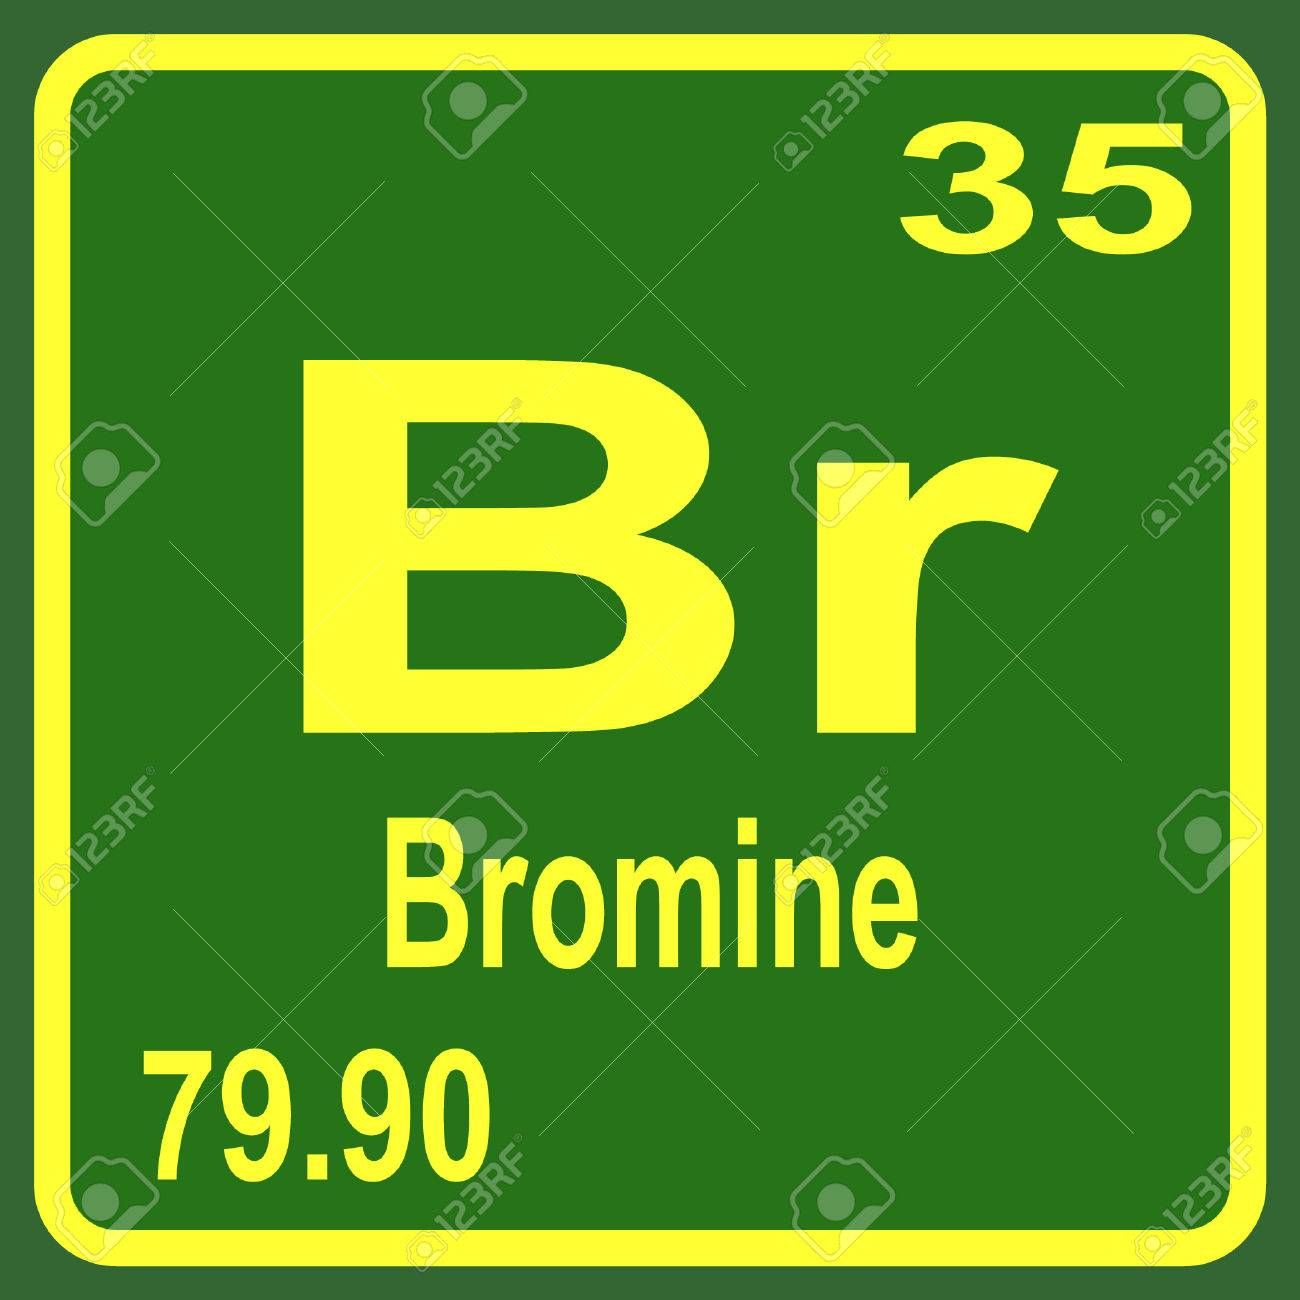 Periodic table of elements bromine royalty free cliparts vectors periodic table of elements bromine stock vector 53901639 buycottarizona Choice Image